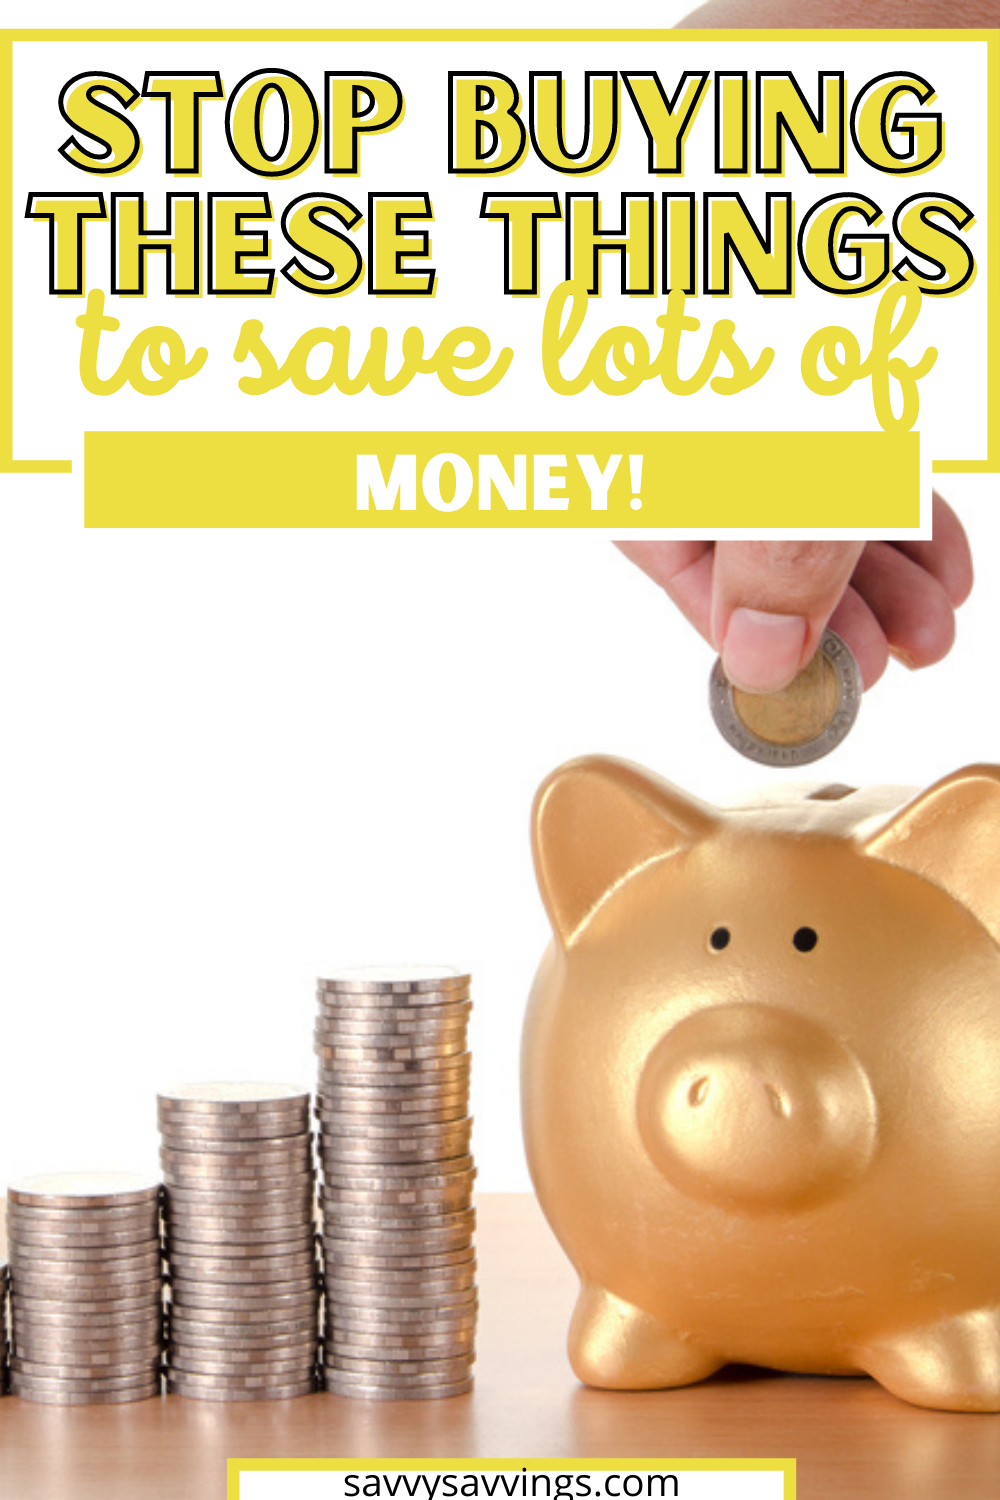 12 Things To Stop Buying To Save Money In 2021 Family Money Saving Teens Saving Money Saving Money Budget